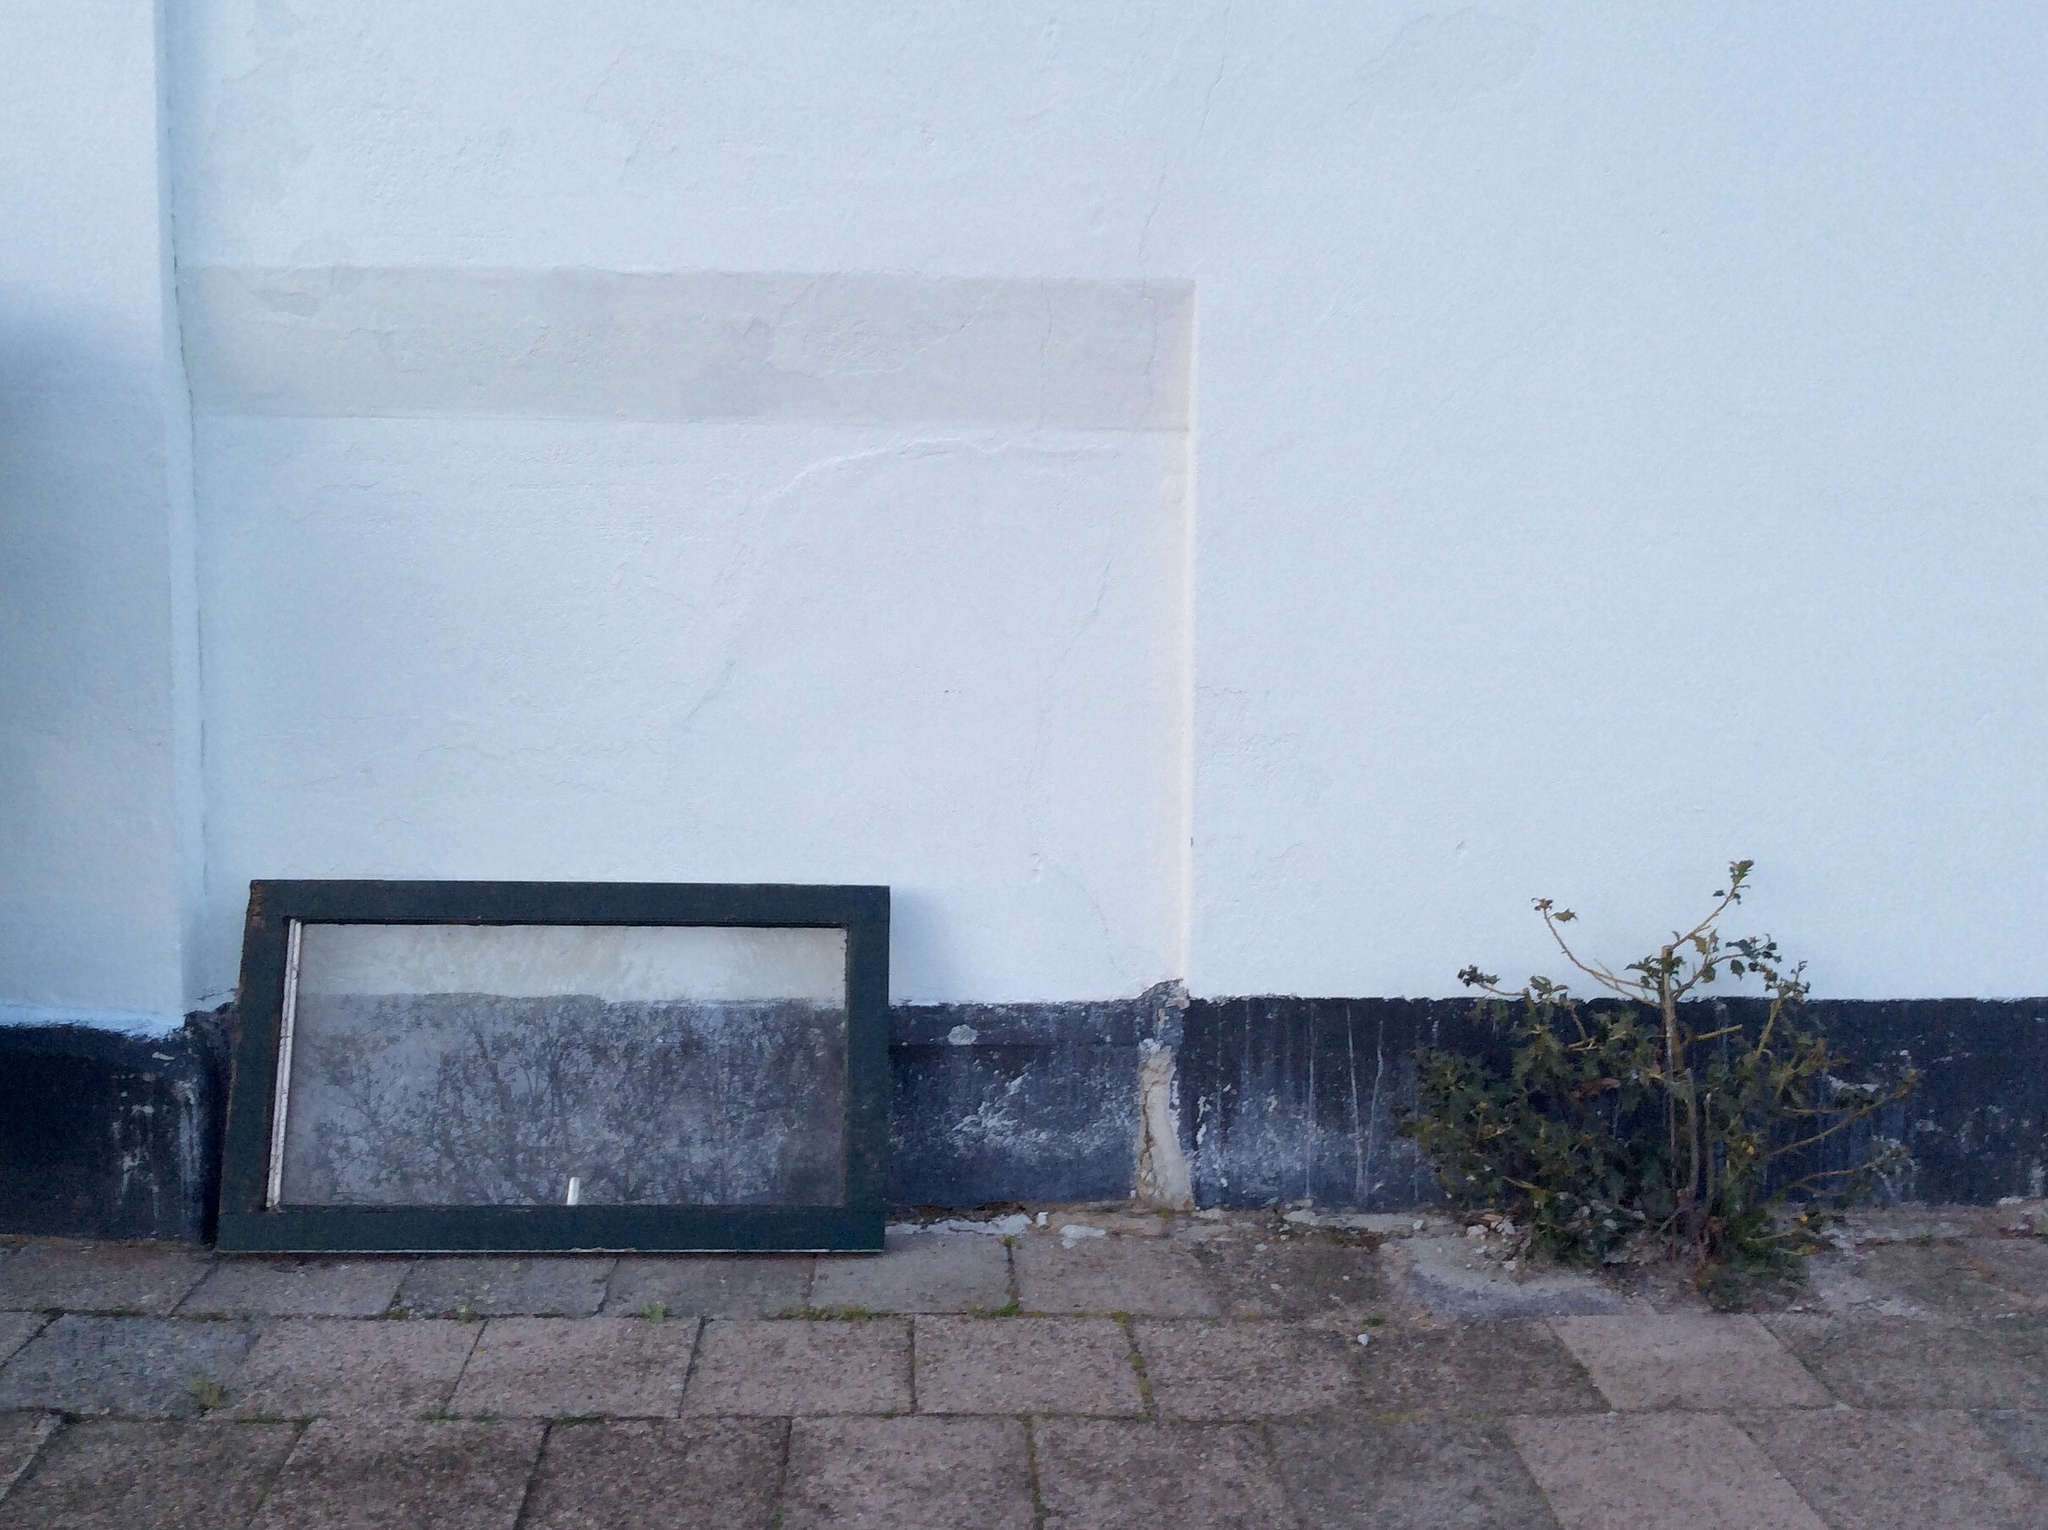 Frames by Joost Markerink, licence: CC BY 2.0